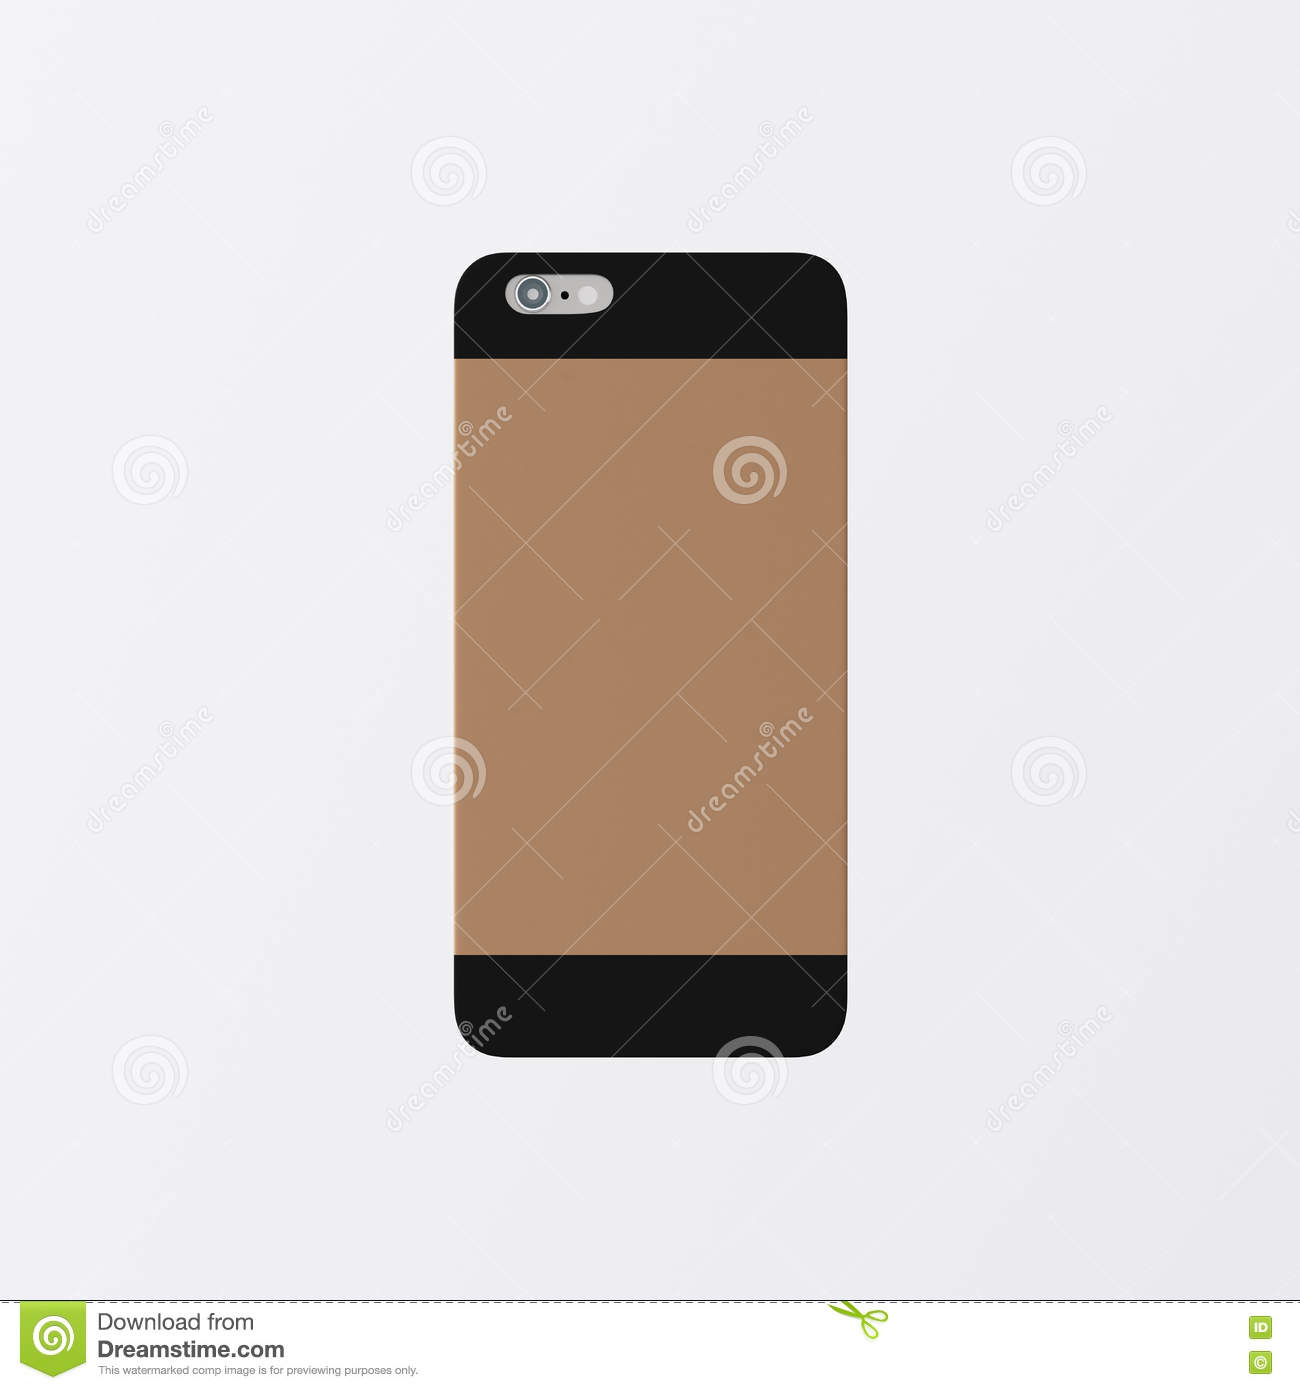 new styles 742df 8dda0 Closeup One Blank Brown Clean Template Cover Phone Case Plastic ...